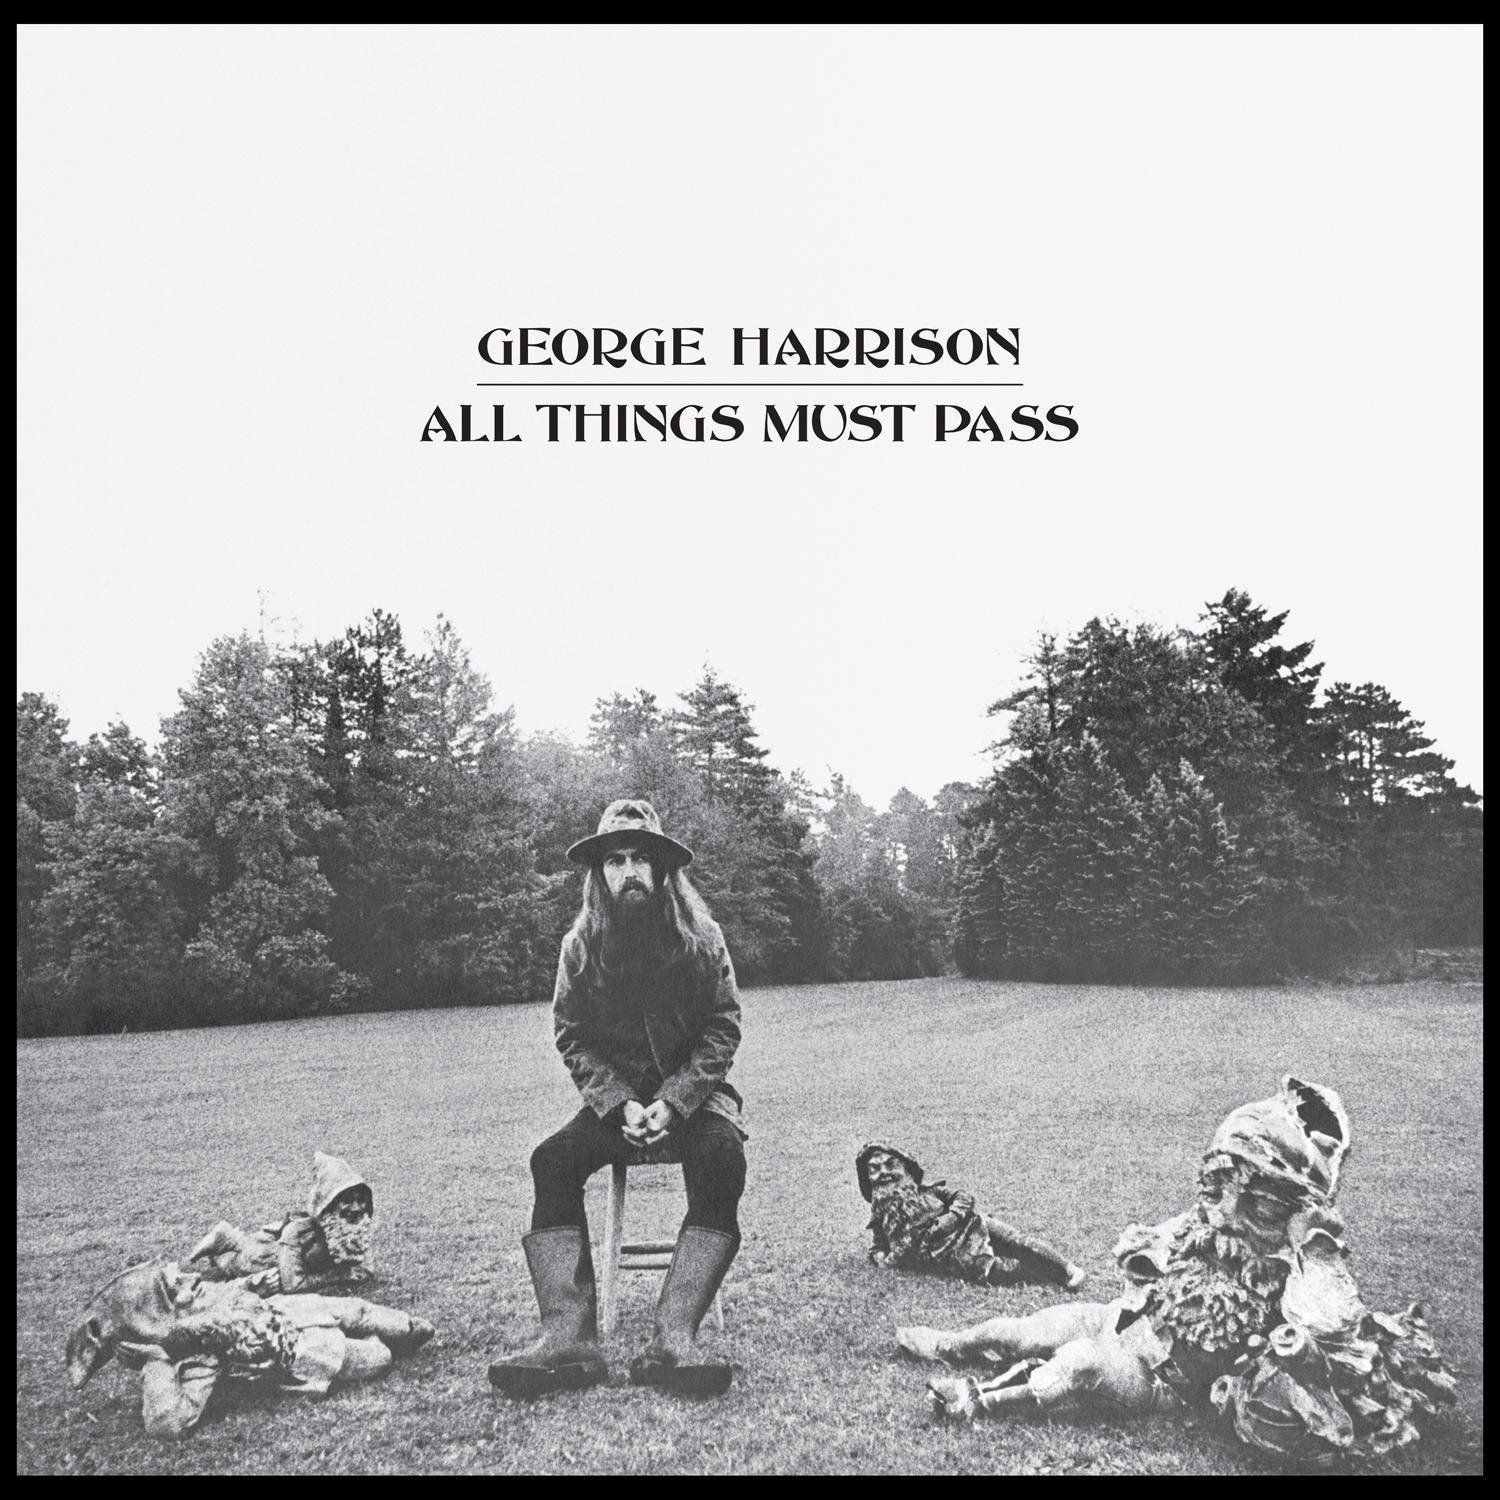 George Harrison - All Things Must Pass album cover